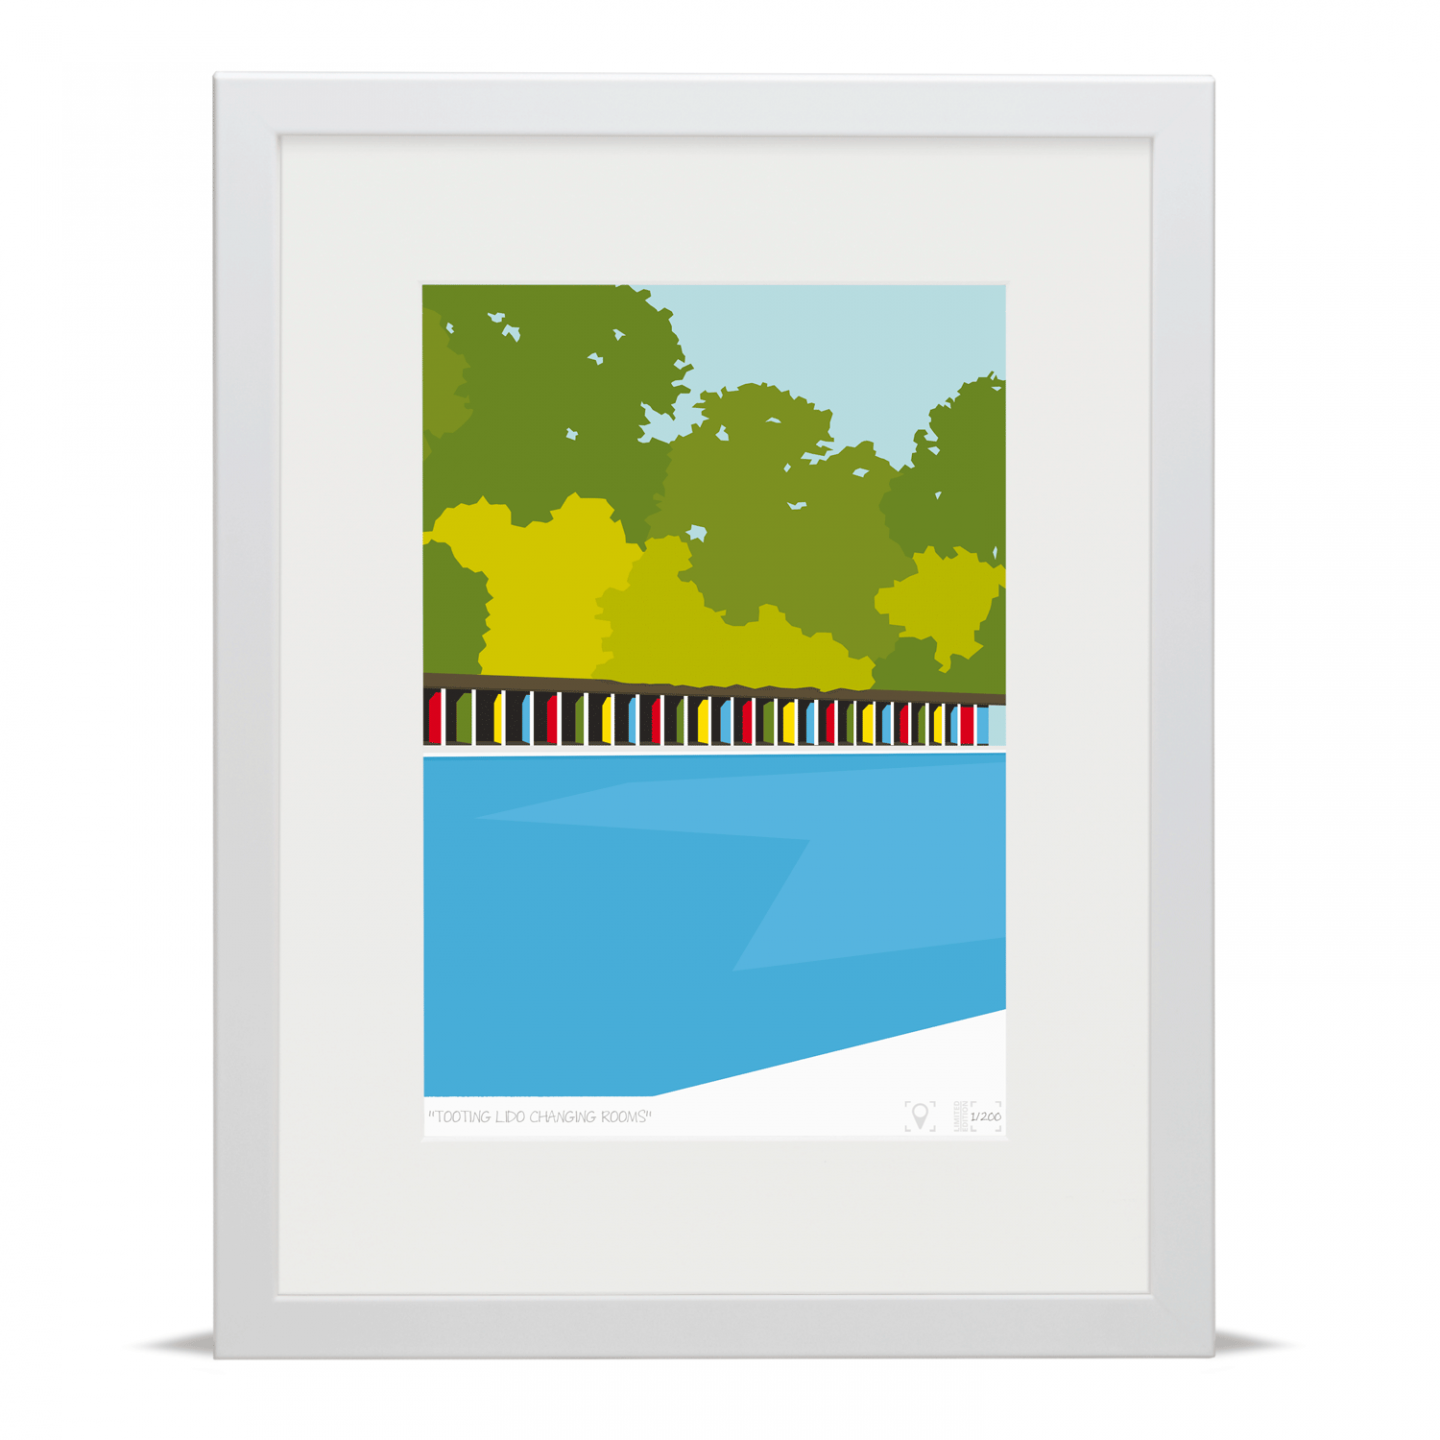 Place in Print Tooting Bec Lido Changing Rooms Art Print White Frame